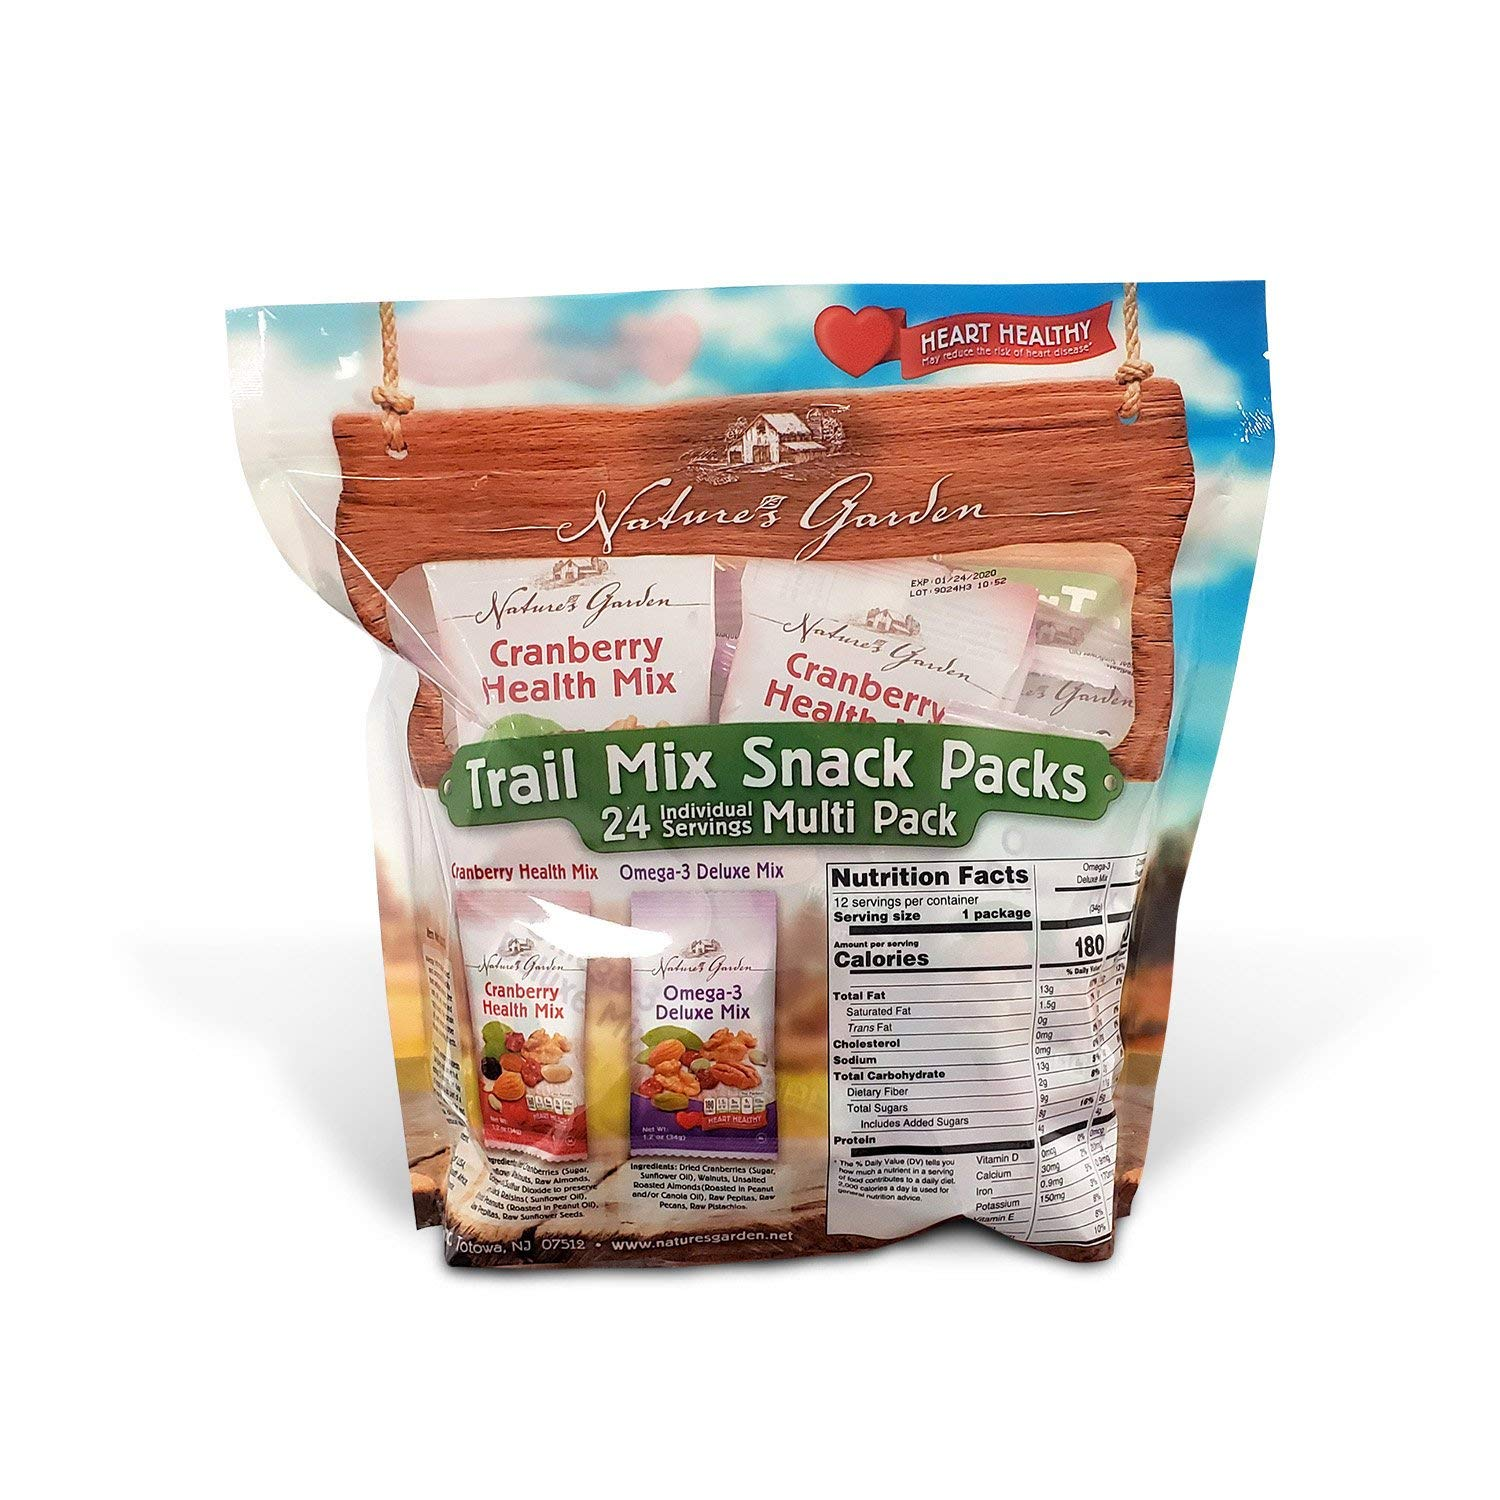 Nature's Garden Trail Mix Snack Packs, Multi Pack 1.2 oz bags, Pack of 24, Omega-3 Deluxe Mix, Cranberry Health Mix (Pack of 2) by Nature's Garden (Image #2)